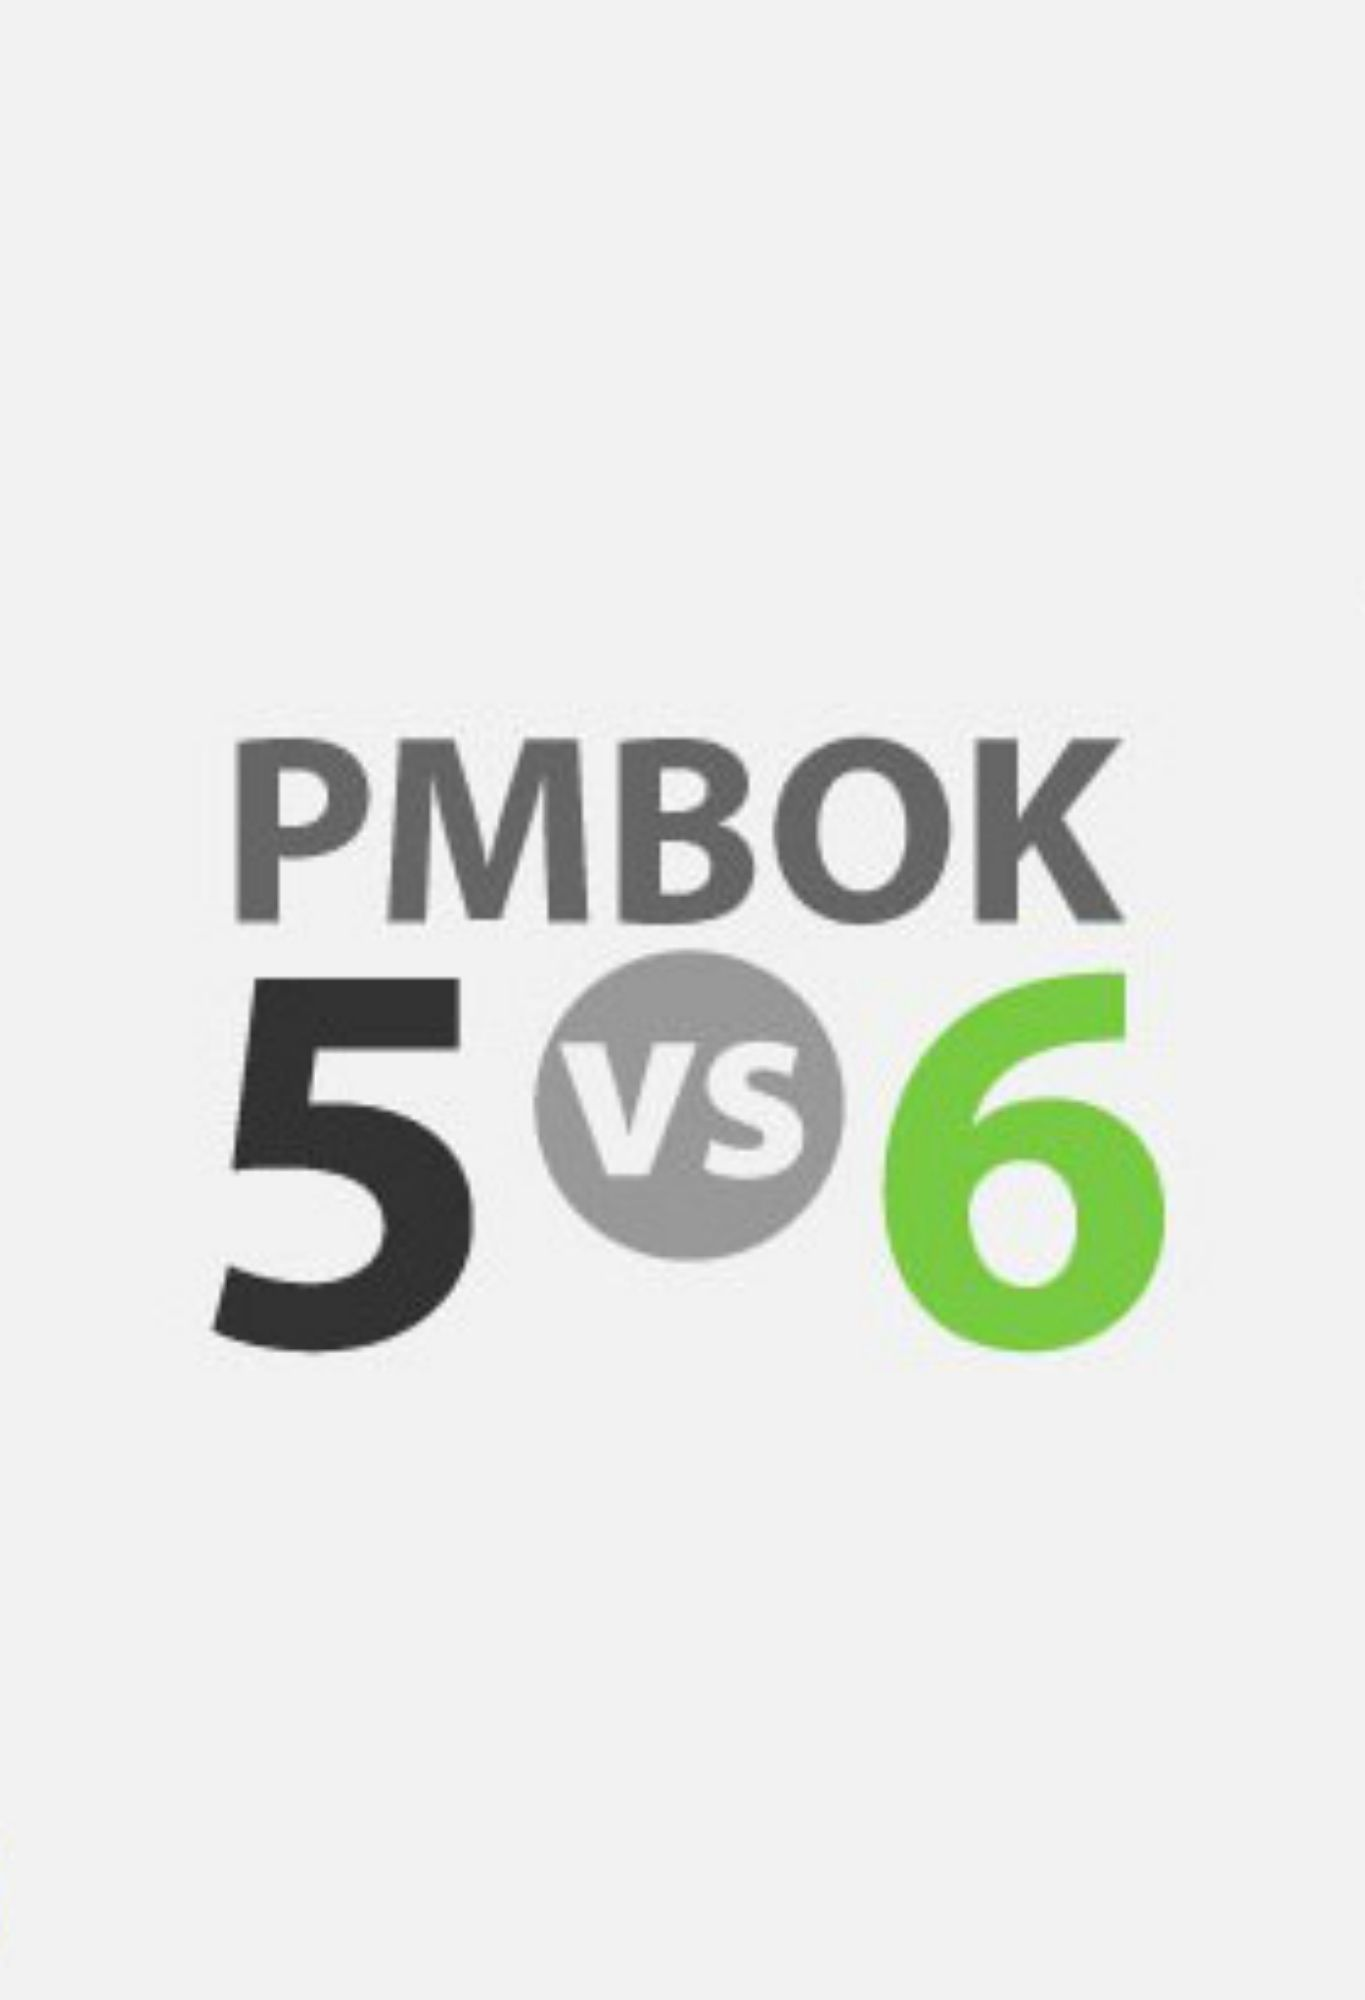 What Has Changed In Pmbok Guide 6 Project Management And Pmbok